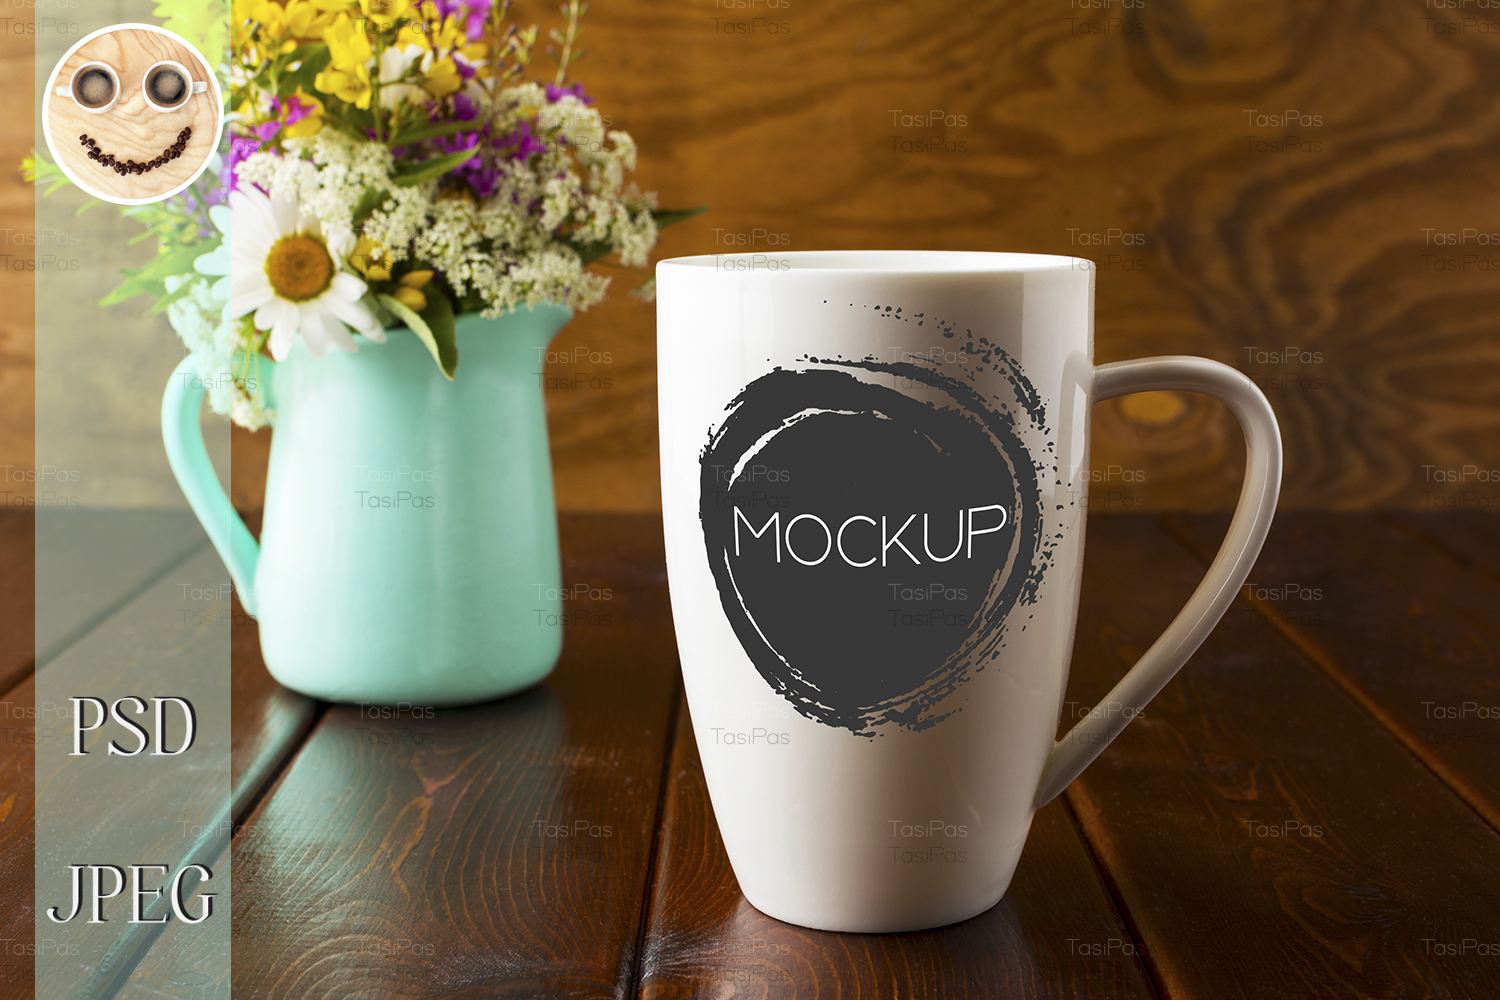 Download Free Coffee Mug With Mint Green Flowerpot Graphic By Tasipas for Cricut Explore, Silhouette and other cutting machines.